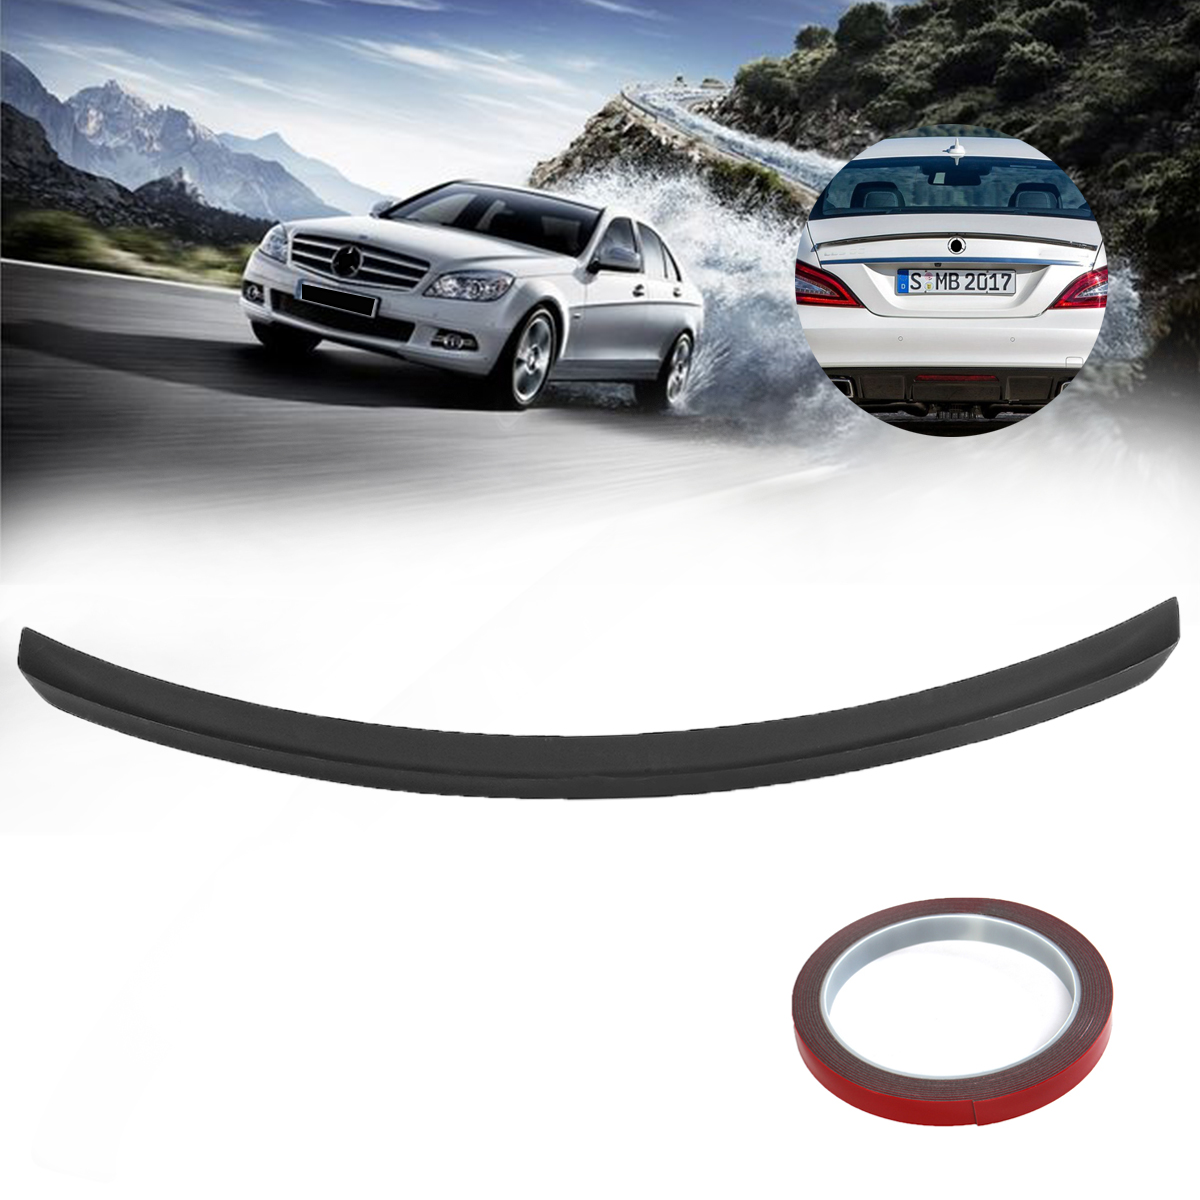 цена на Rear Trunk Boot Spoiler For Mercedes CLS CLASS W218 C218 For AMG 2011- ABS Plastic Black Rear Wing Spoiler Rear Trunk Roof Wing